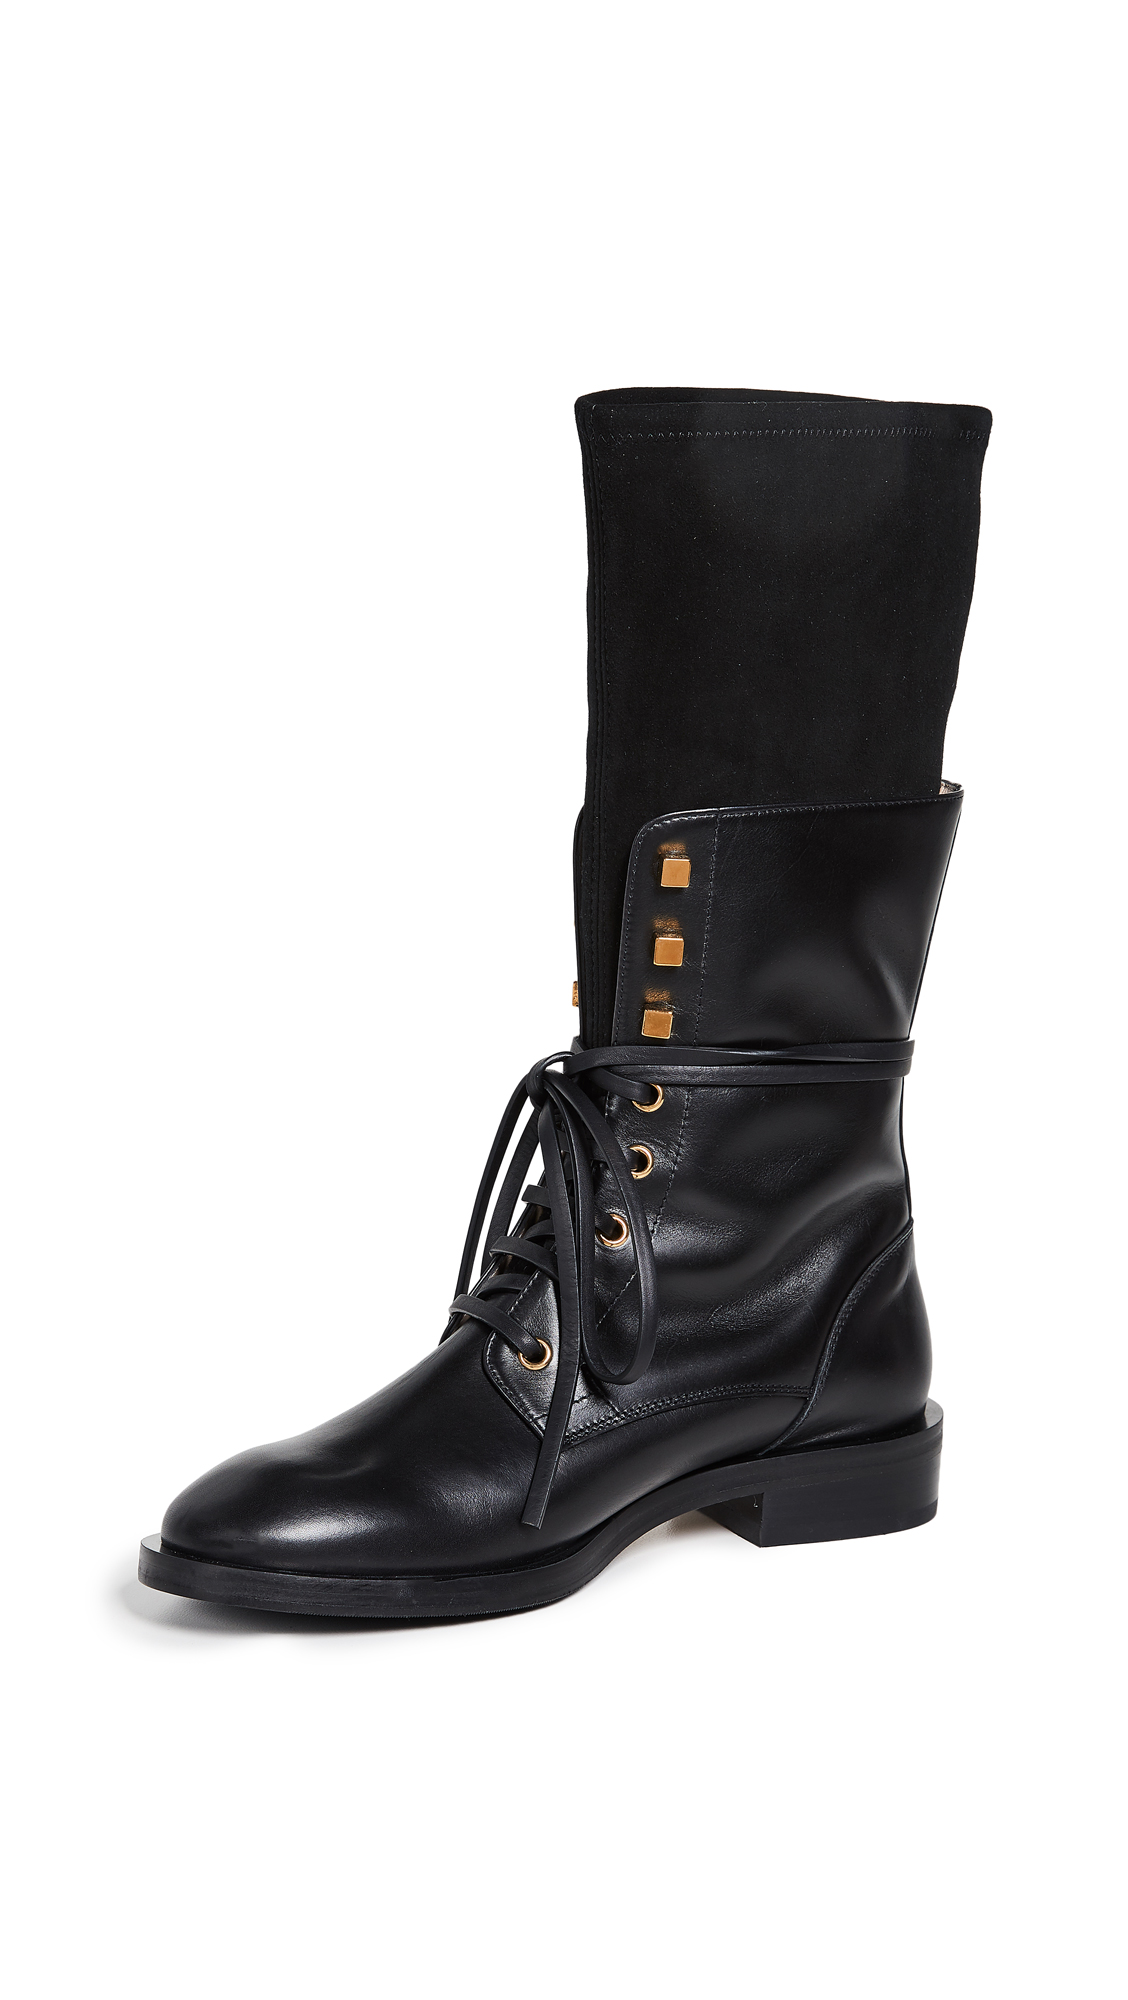 Photo of Stuart Weitzman Violet Boots online shoes sales